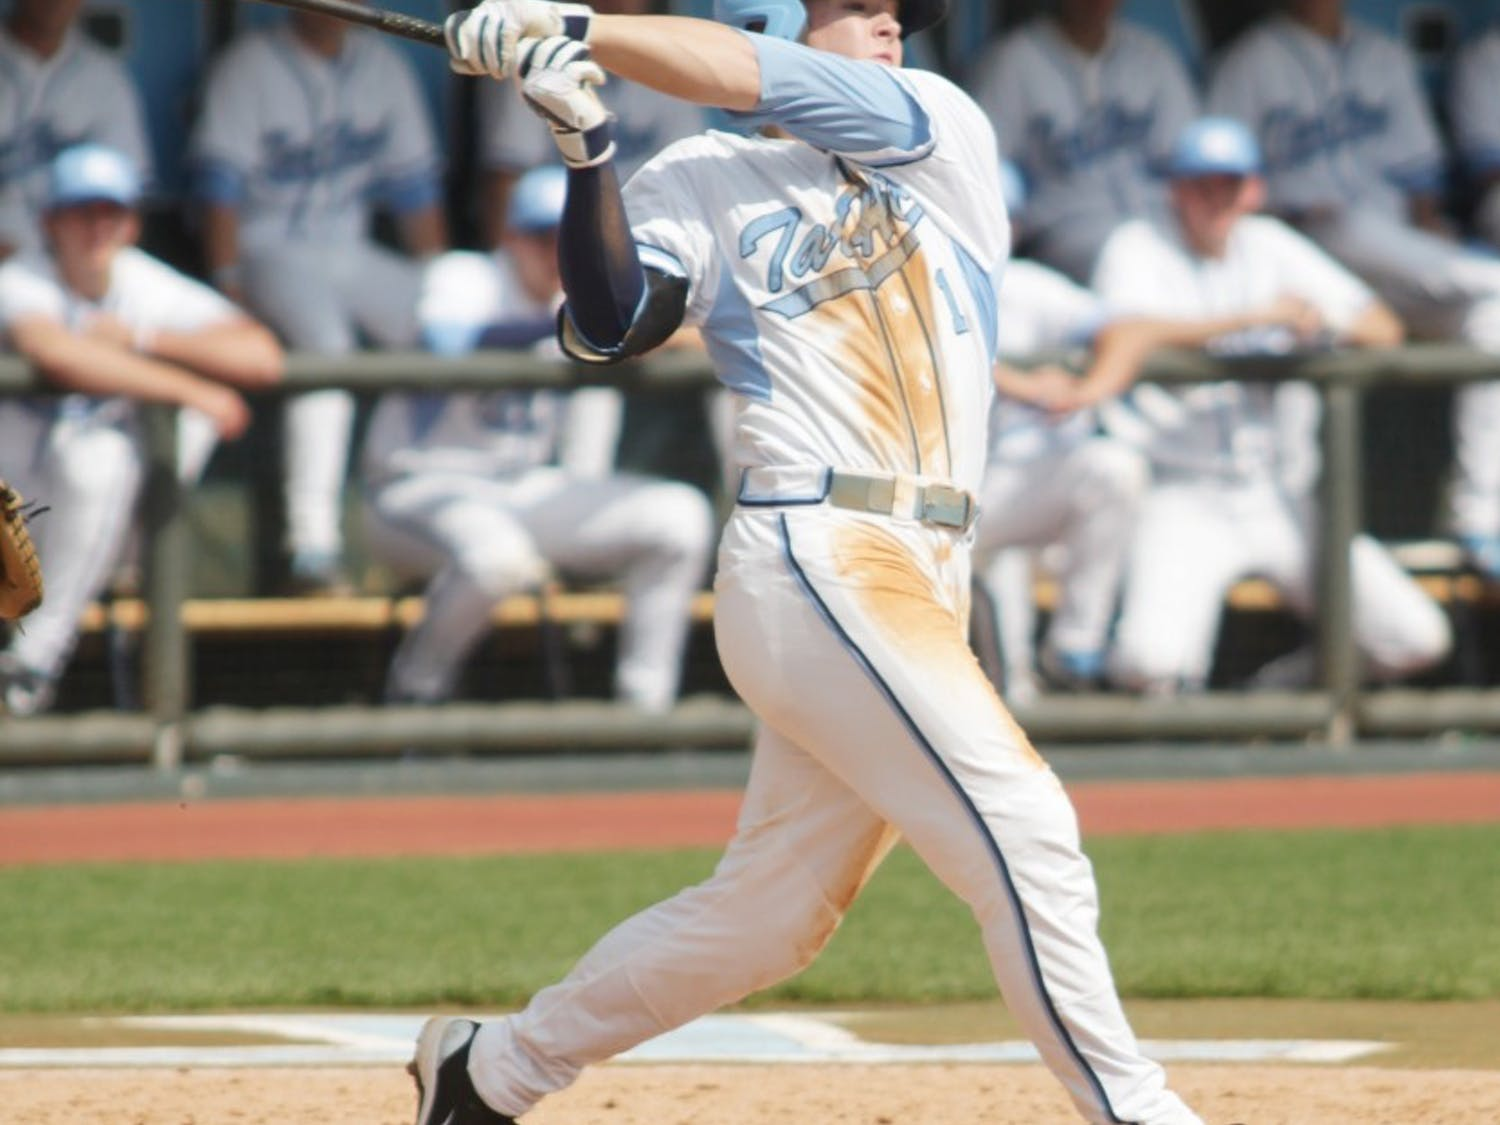 UNC baseball vs. Wake Forest on March 31